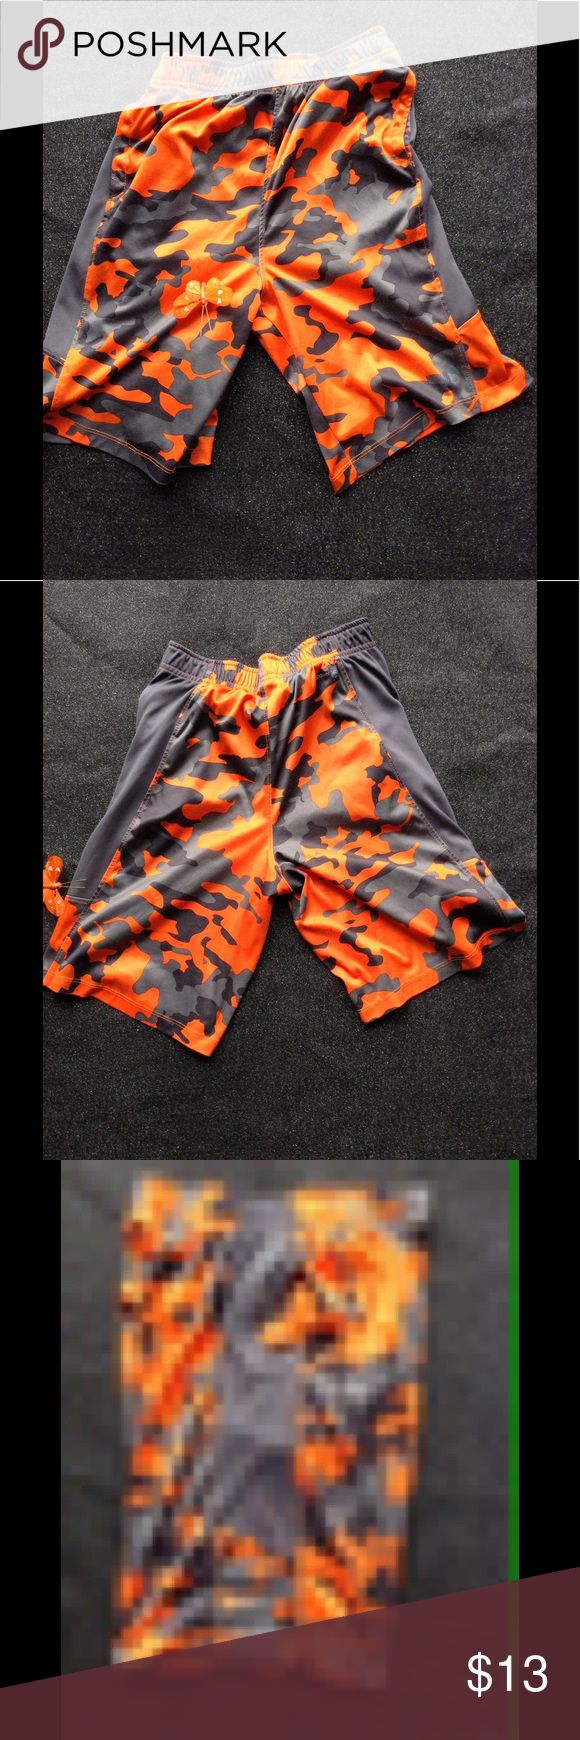 "RUSSELL boys sport shorts RUSSELL boys sport shorts. Orange/gray camo design. Elastic waist, side seam pockets. Dri Power 360 . Good condition, slight pilling from wear hardly noticeable when wearing. Measurements laying flat: Waist 12"". Inseam 9"". Out seam 18"". Leg opening 10 1/2"". Front rise 11"". Back rise 14"". Hips 16"" Russell Athletic Bottoms Shorts"